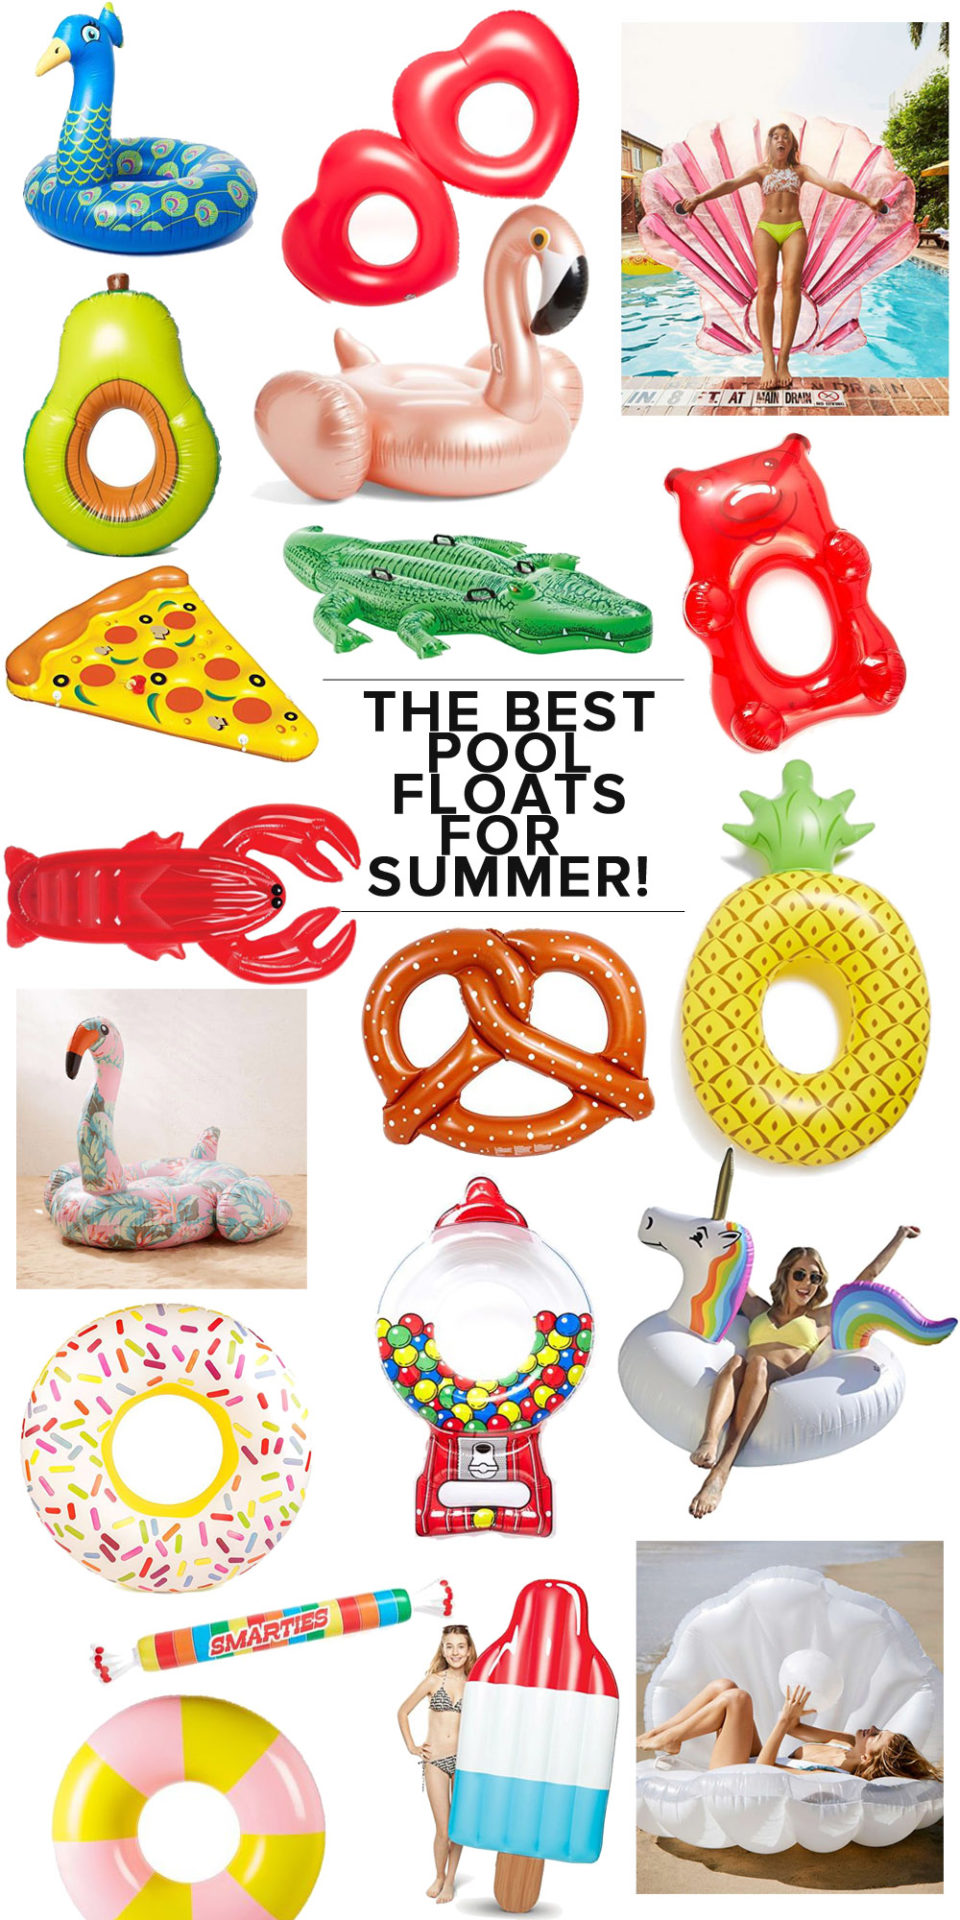 The Best Pool Floats for Summer (for Adults!) // the modern savvy